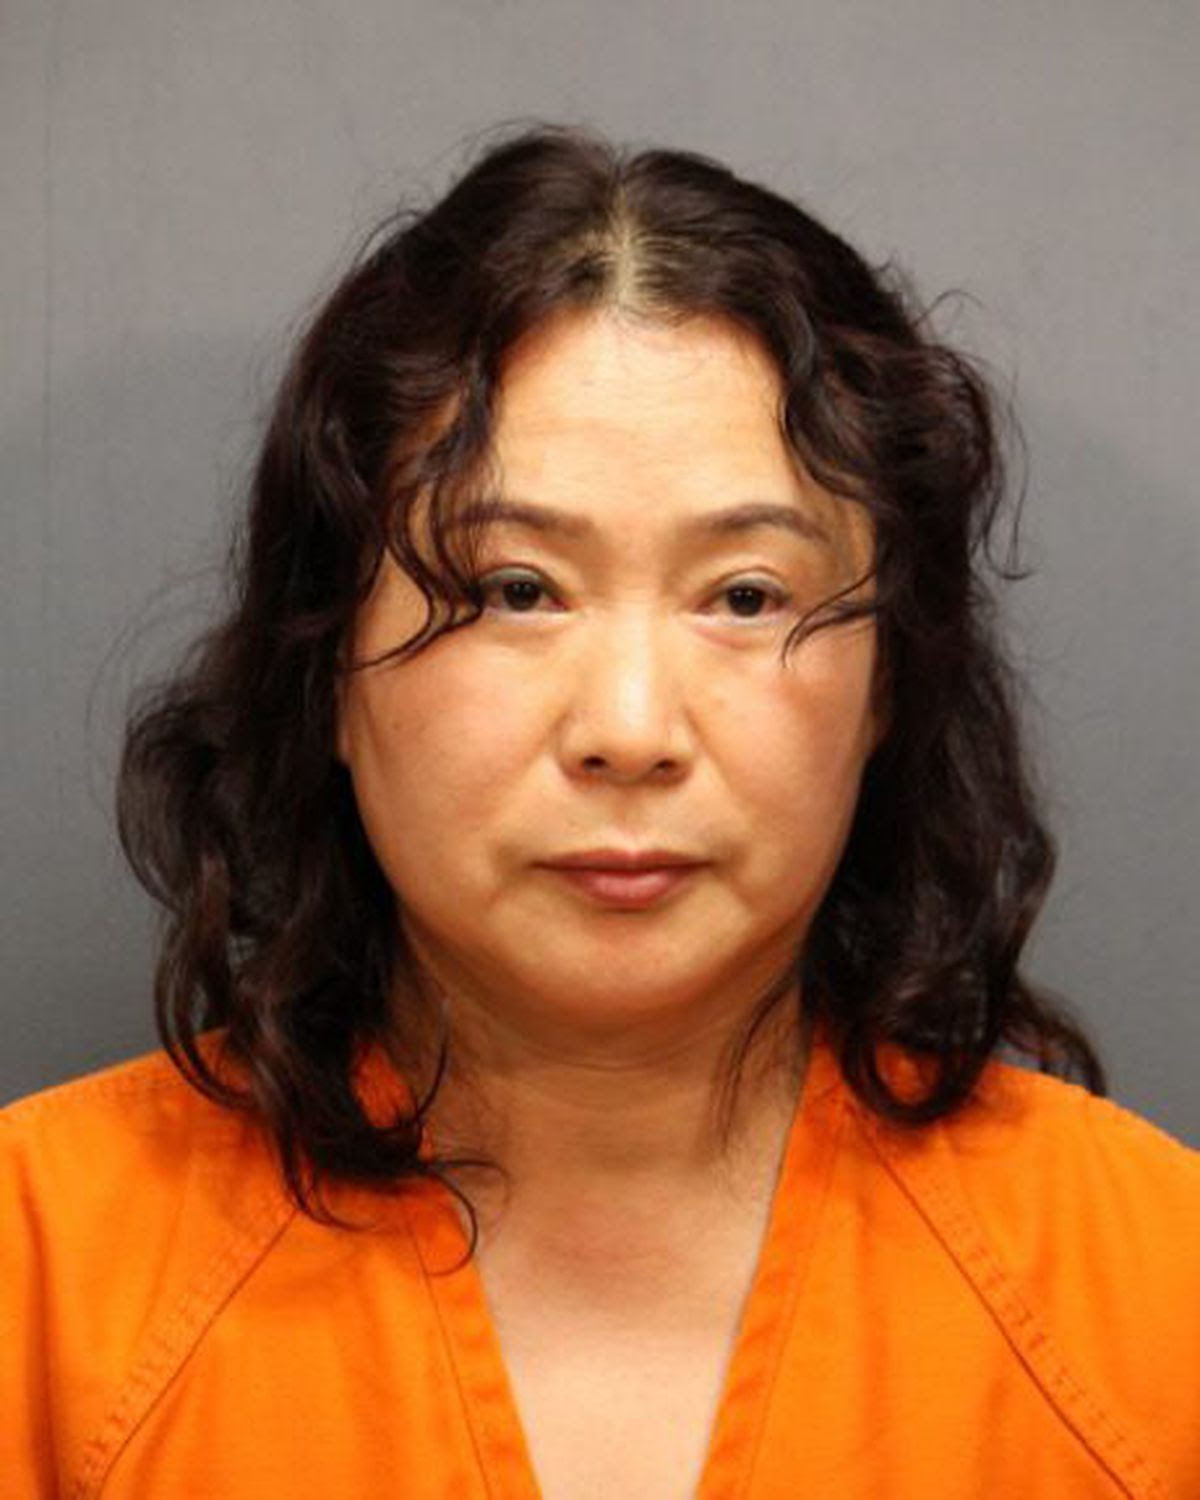 Two women arrested on prostitution charges at Lawton ...